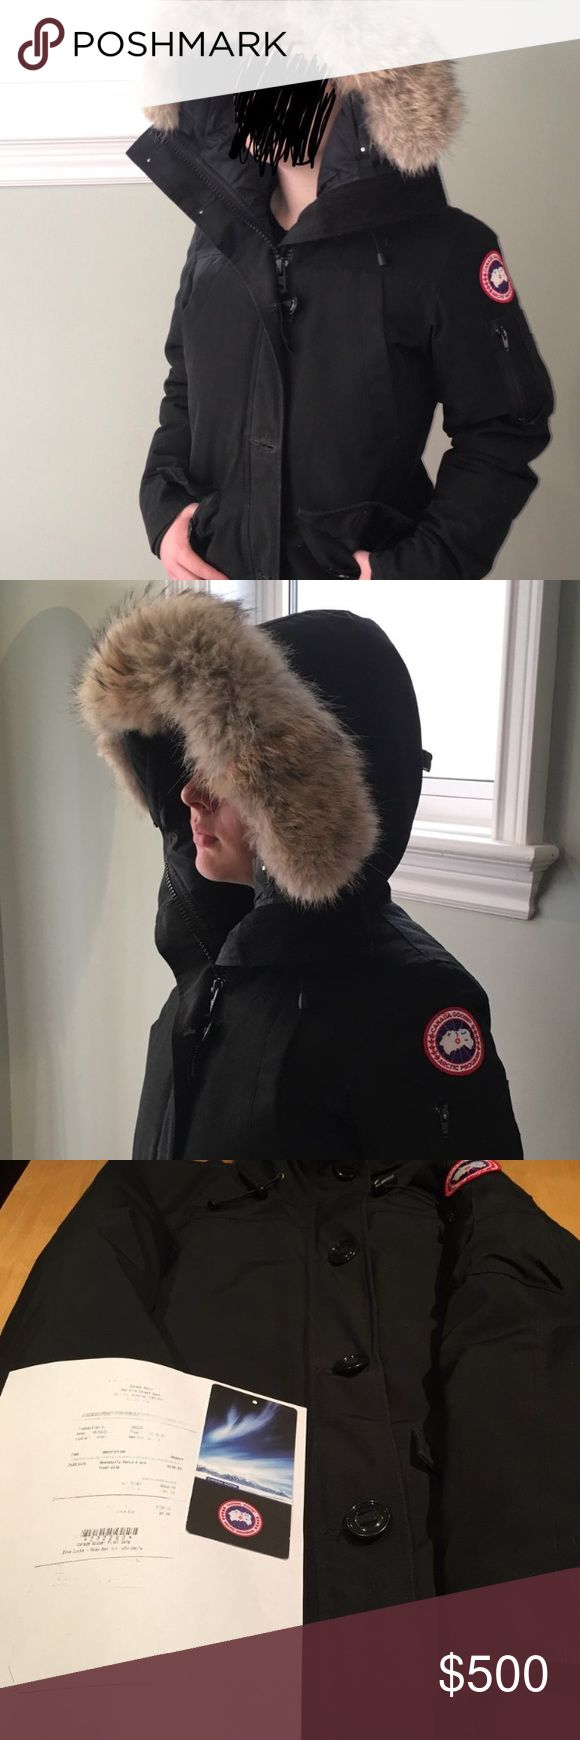 Canada Goose Montebello Parka 🔵 CANADA GOOSE 🔵 barely worn black Montebello Canada Goose jacket!!!! SUPER warm, perfect for this crazy cold winter. Retails for $795. Msg for details/if interested!!! Canada Goose Jackets & Coats